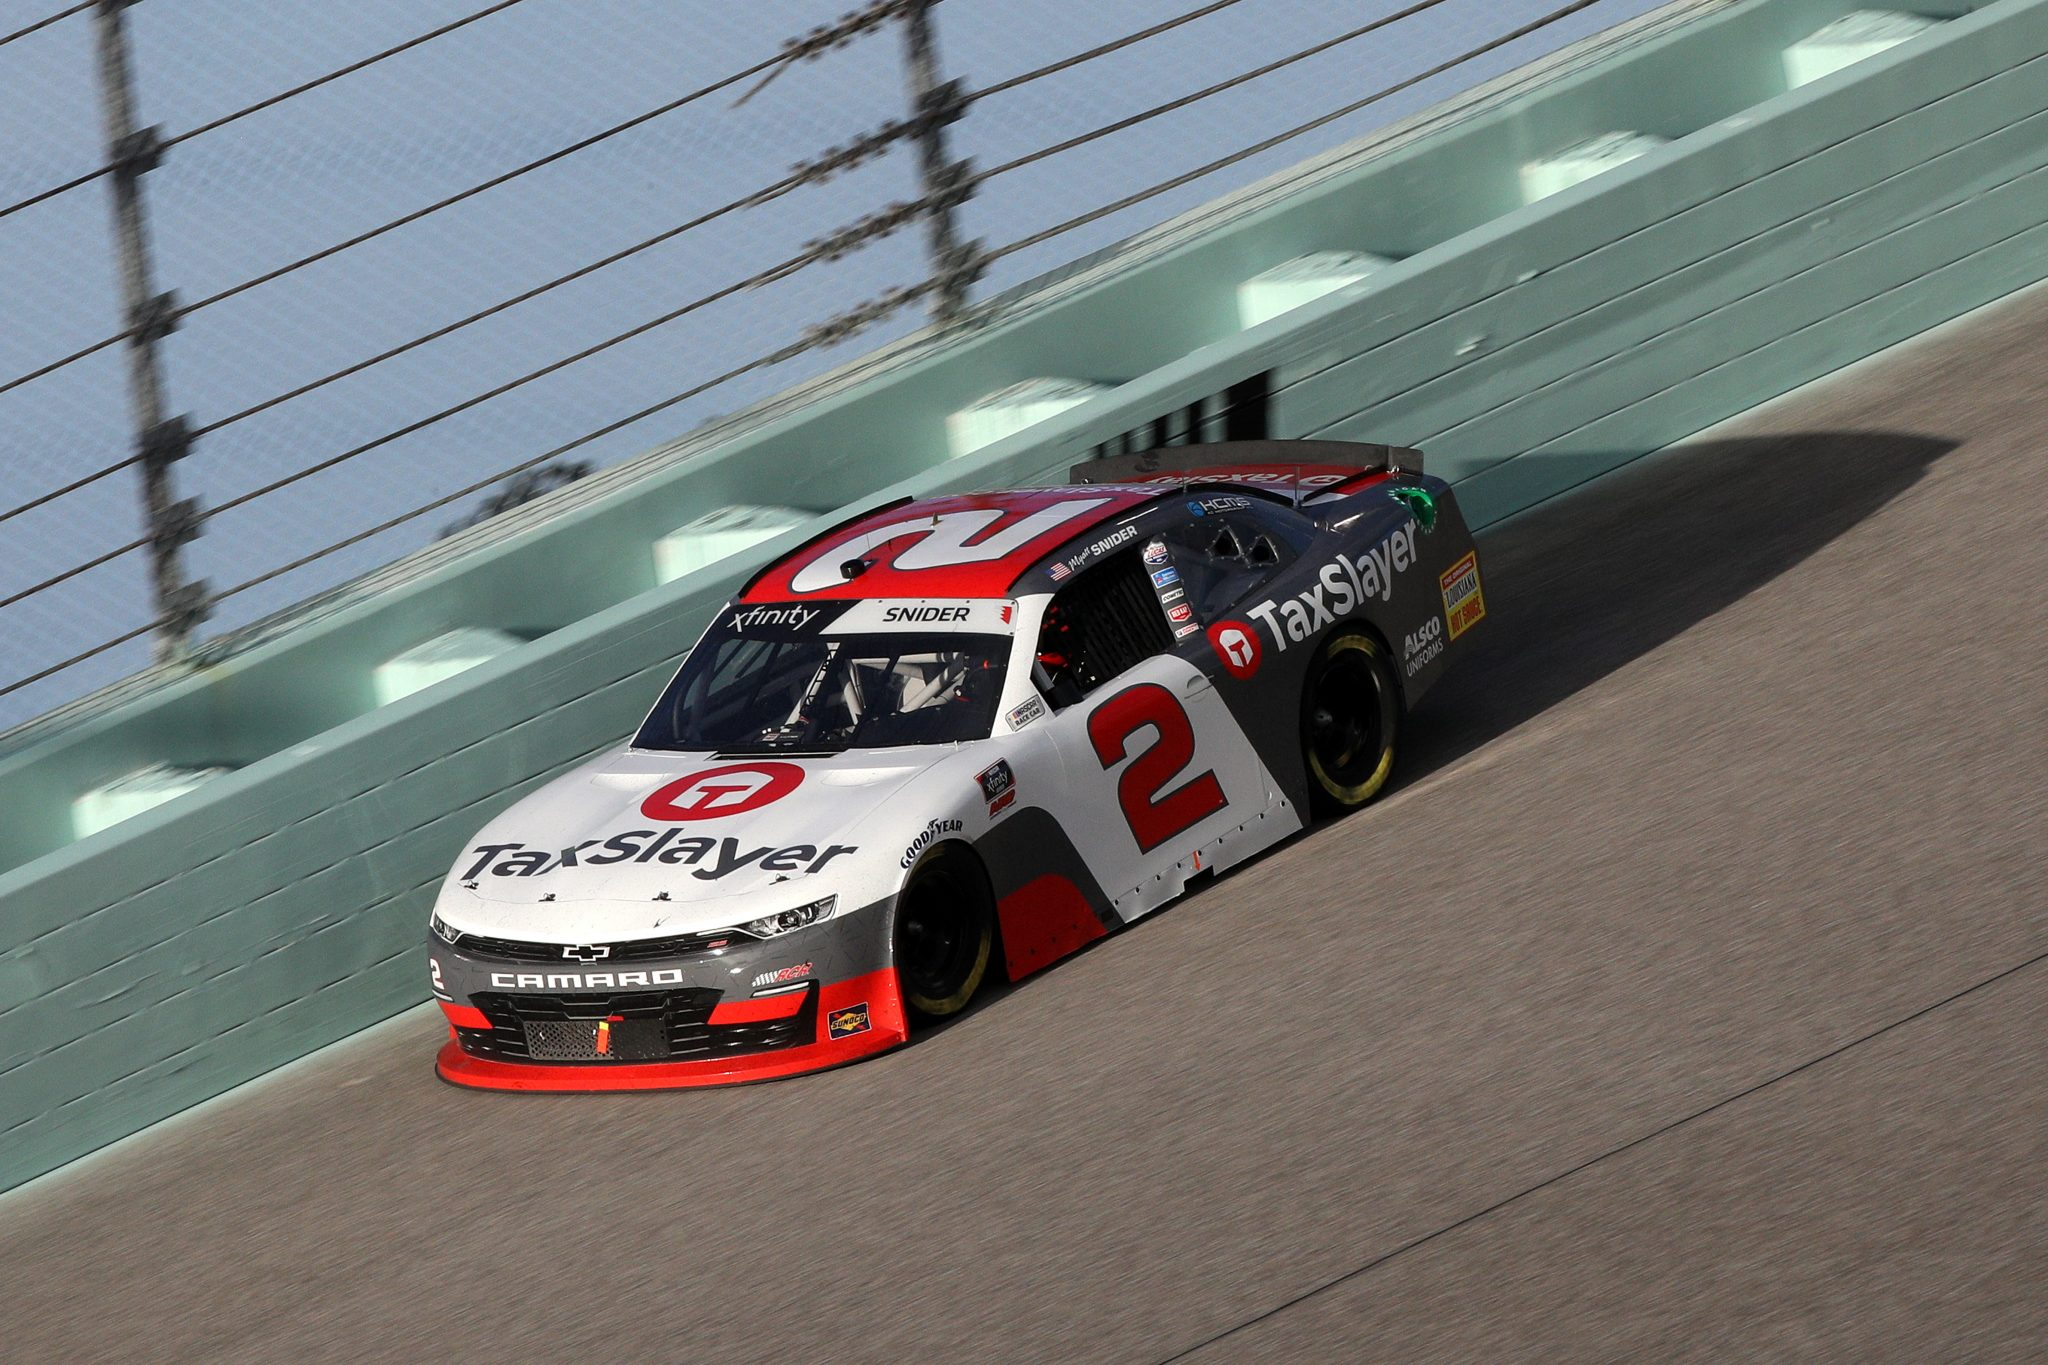 HOMESTEAD, FLORIDA - FEBRUARY 27: Myatt Snider, driver of the #2 TaxSlayer Chevrolet, drives during the NASCAR Xfinity Series Contender Boats 250 at Homestead-Miami Speedway on February 27, 2021 in Homestead, Florida. (Photo by Sean Gardner/Getty Images) | Getty Images